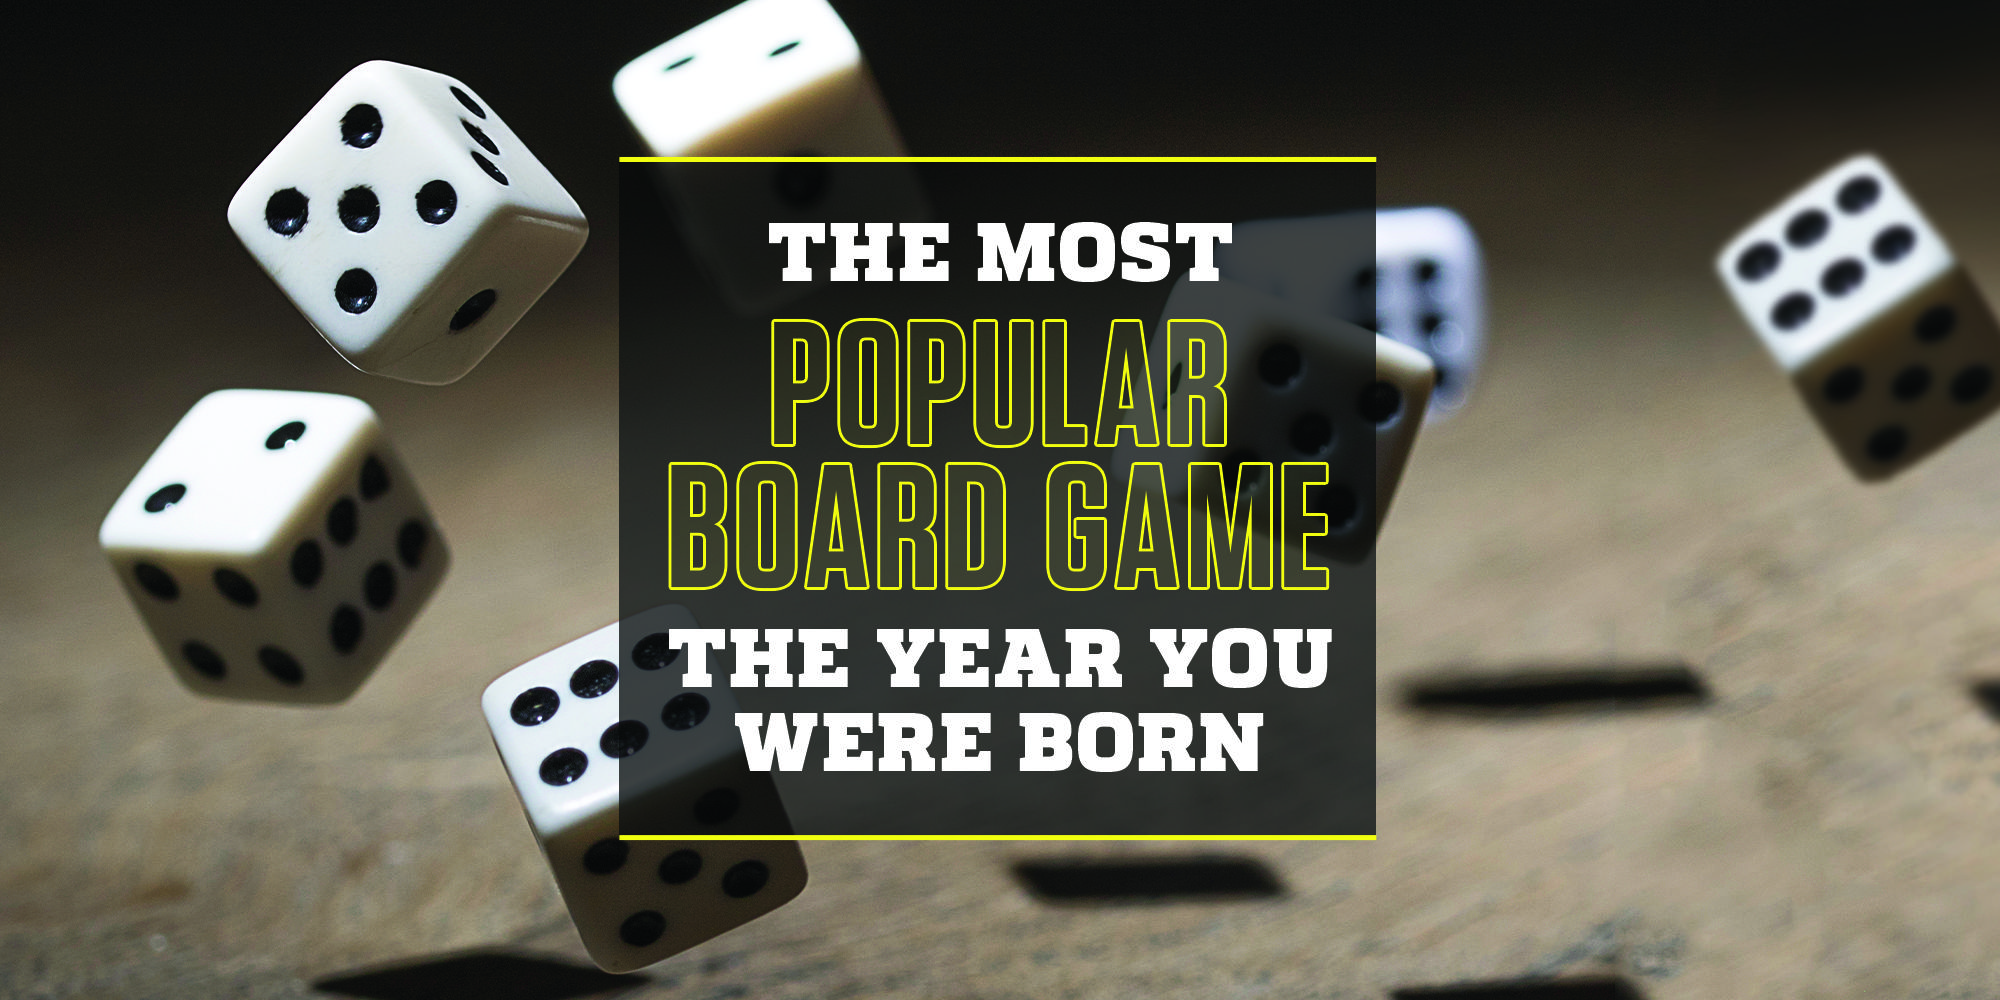 The Most Popular Board Game the Year You Were Born